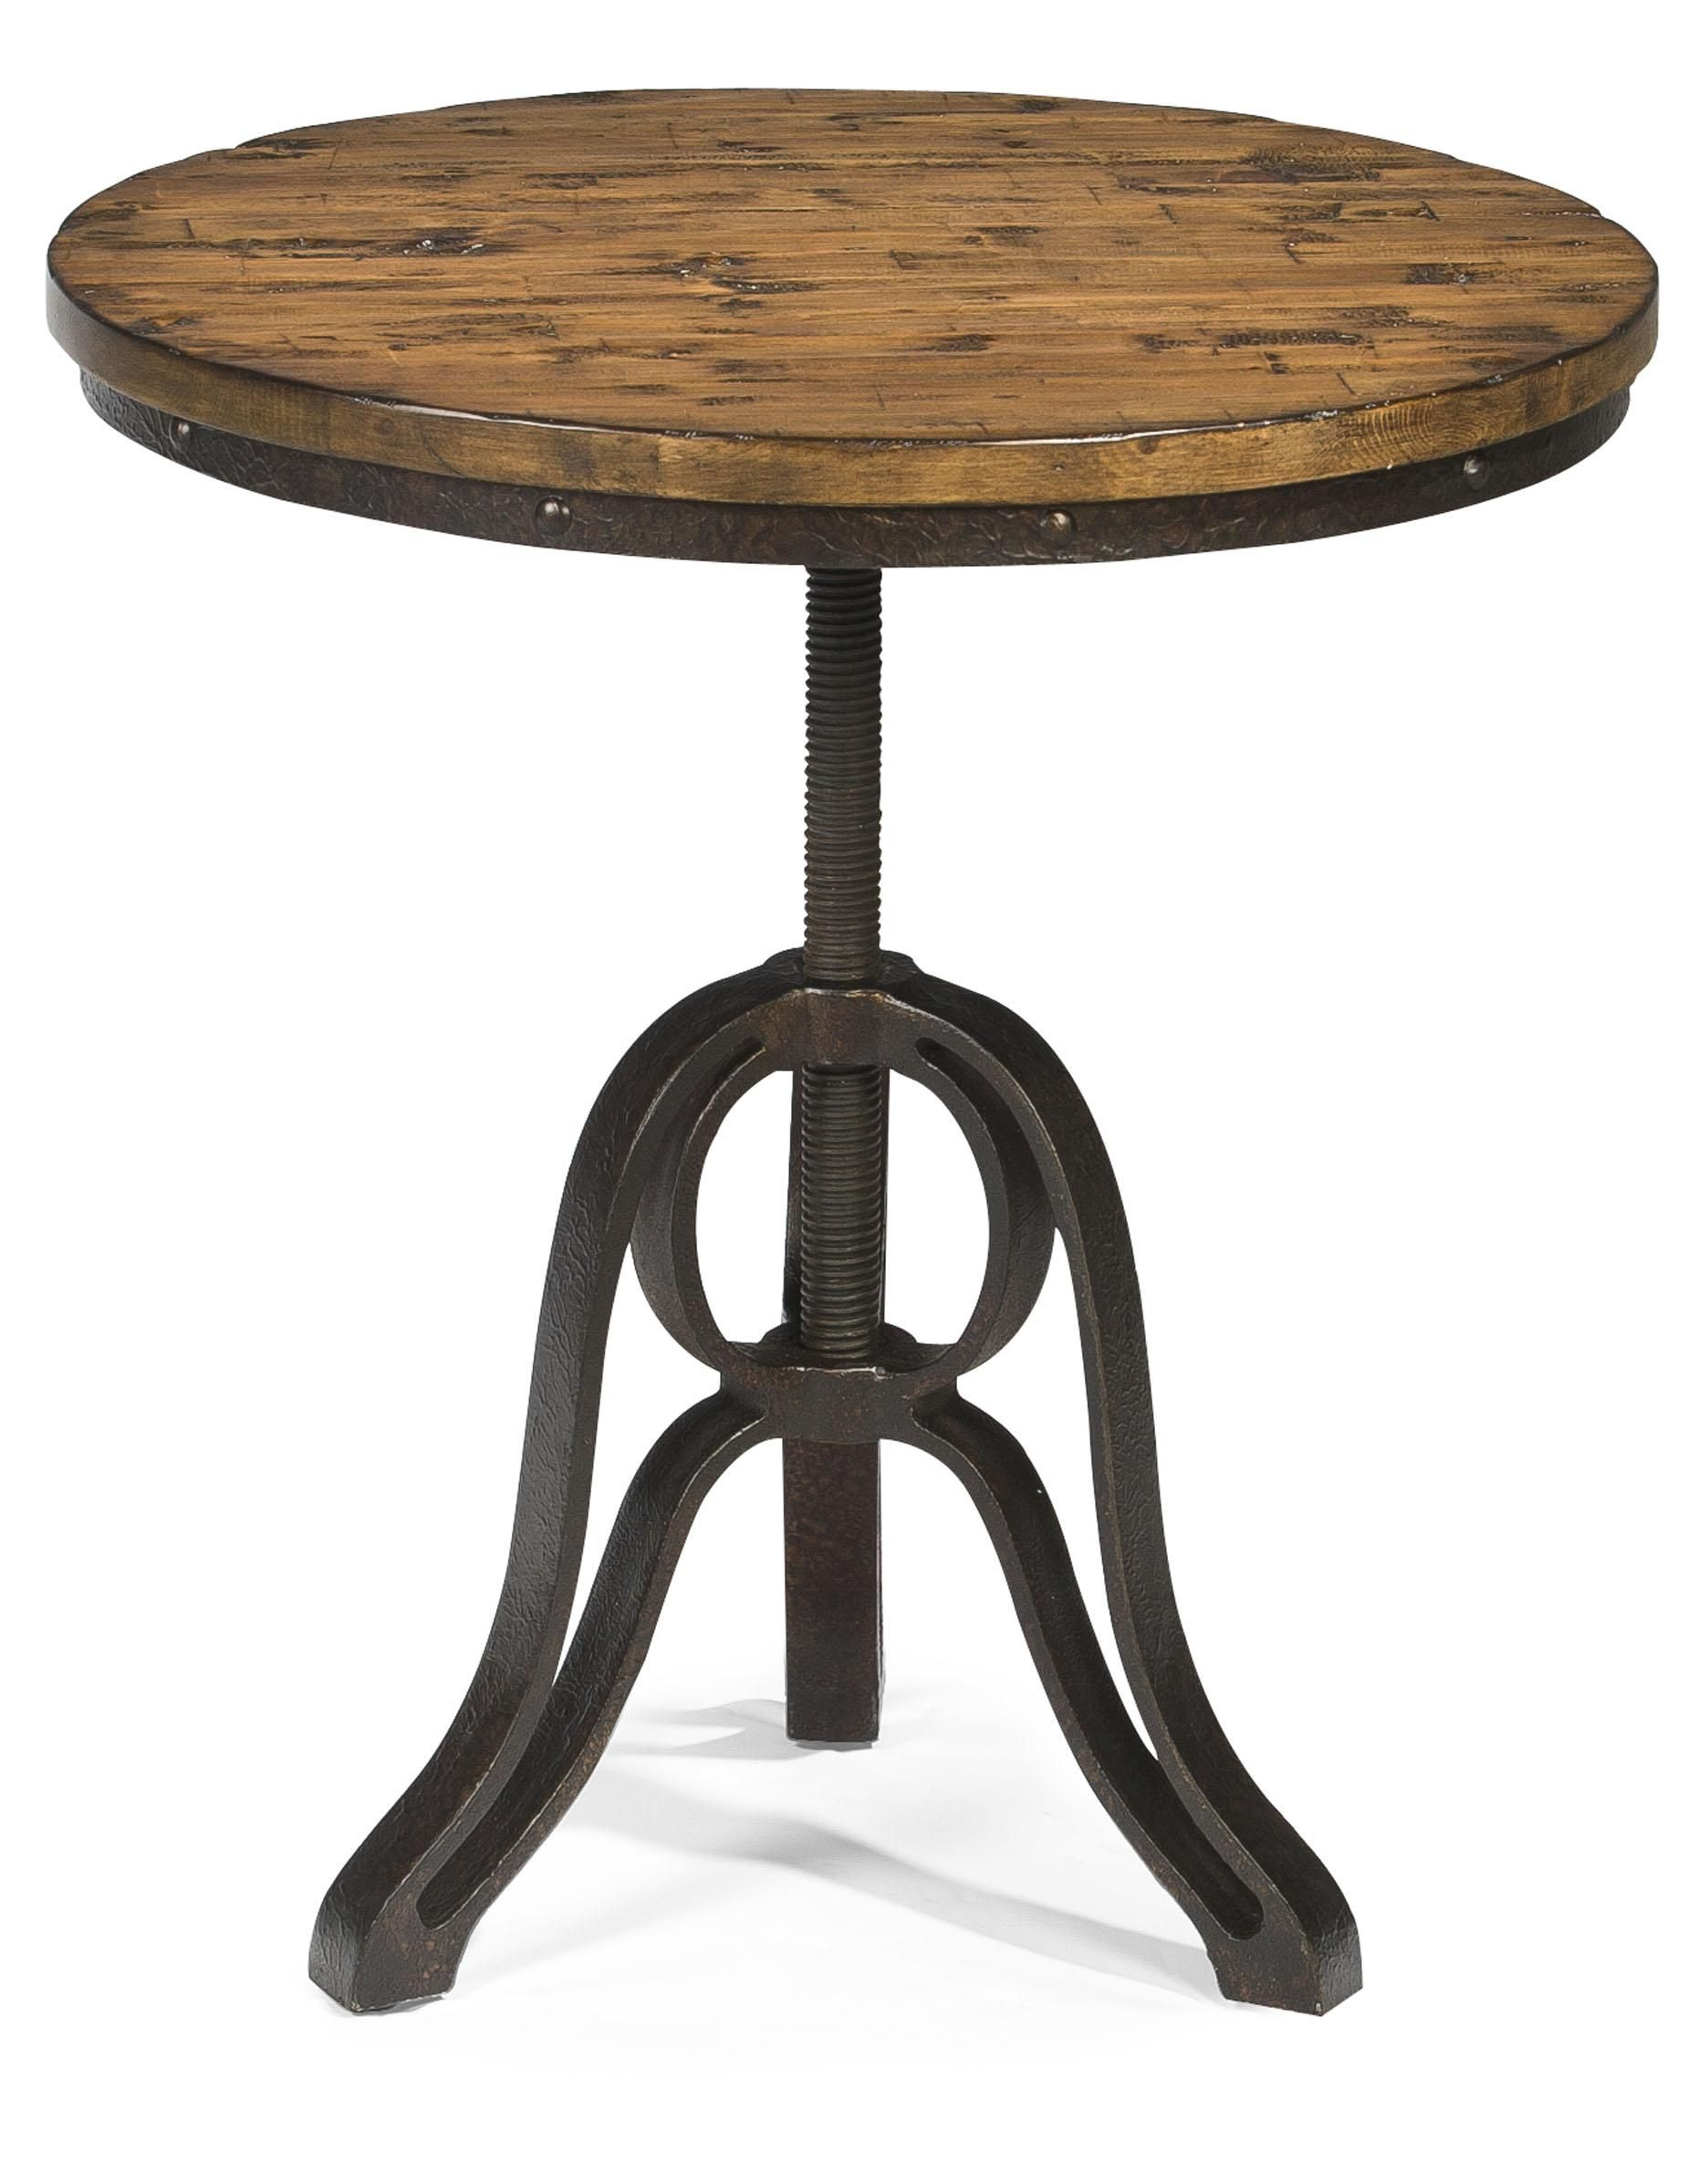 Cranfill Industrial Style Round End Table With Adjustable Height By Magnussen Home Round Accent Table Accent Table End Tables [ 2370 x 1872 Pixel ]